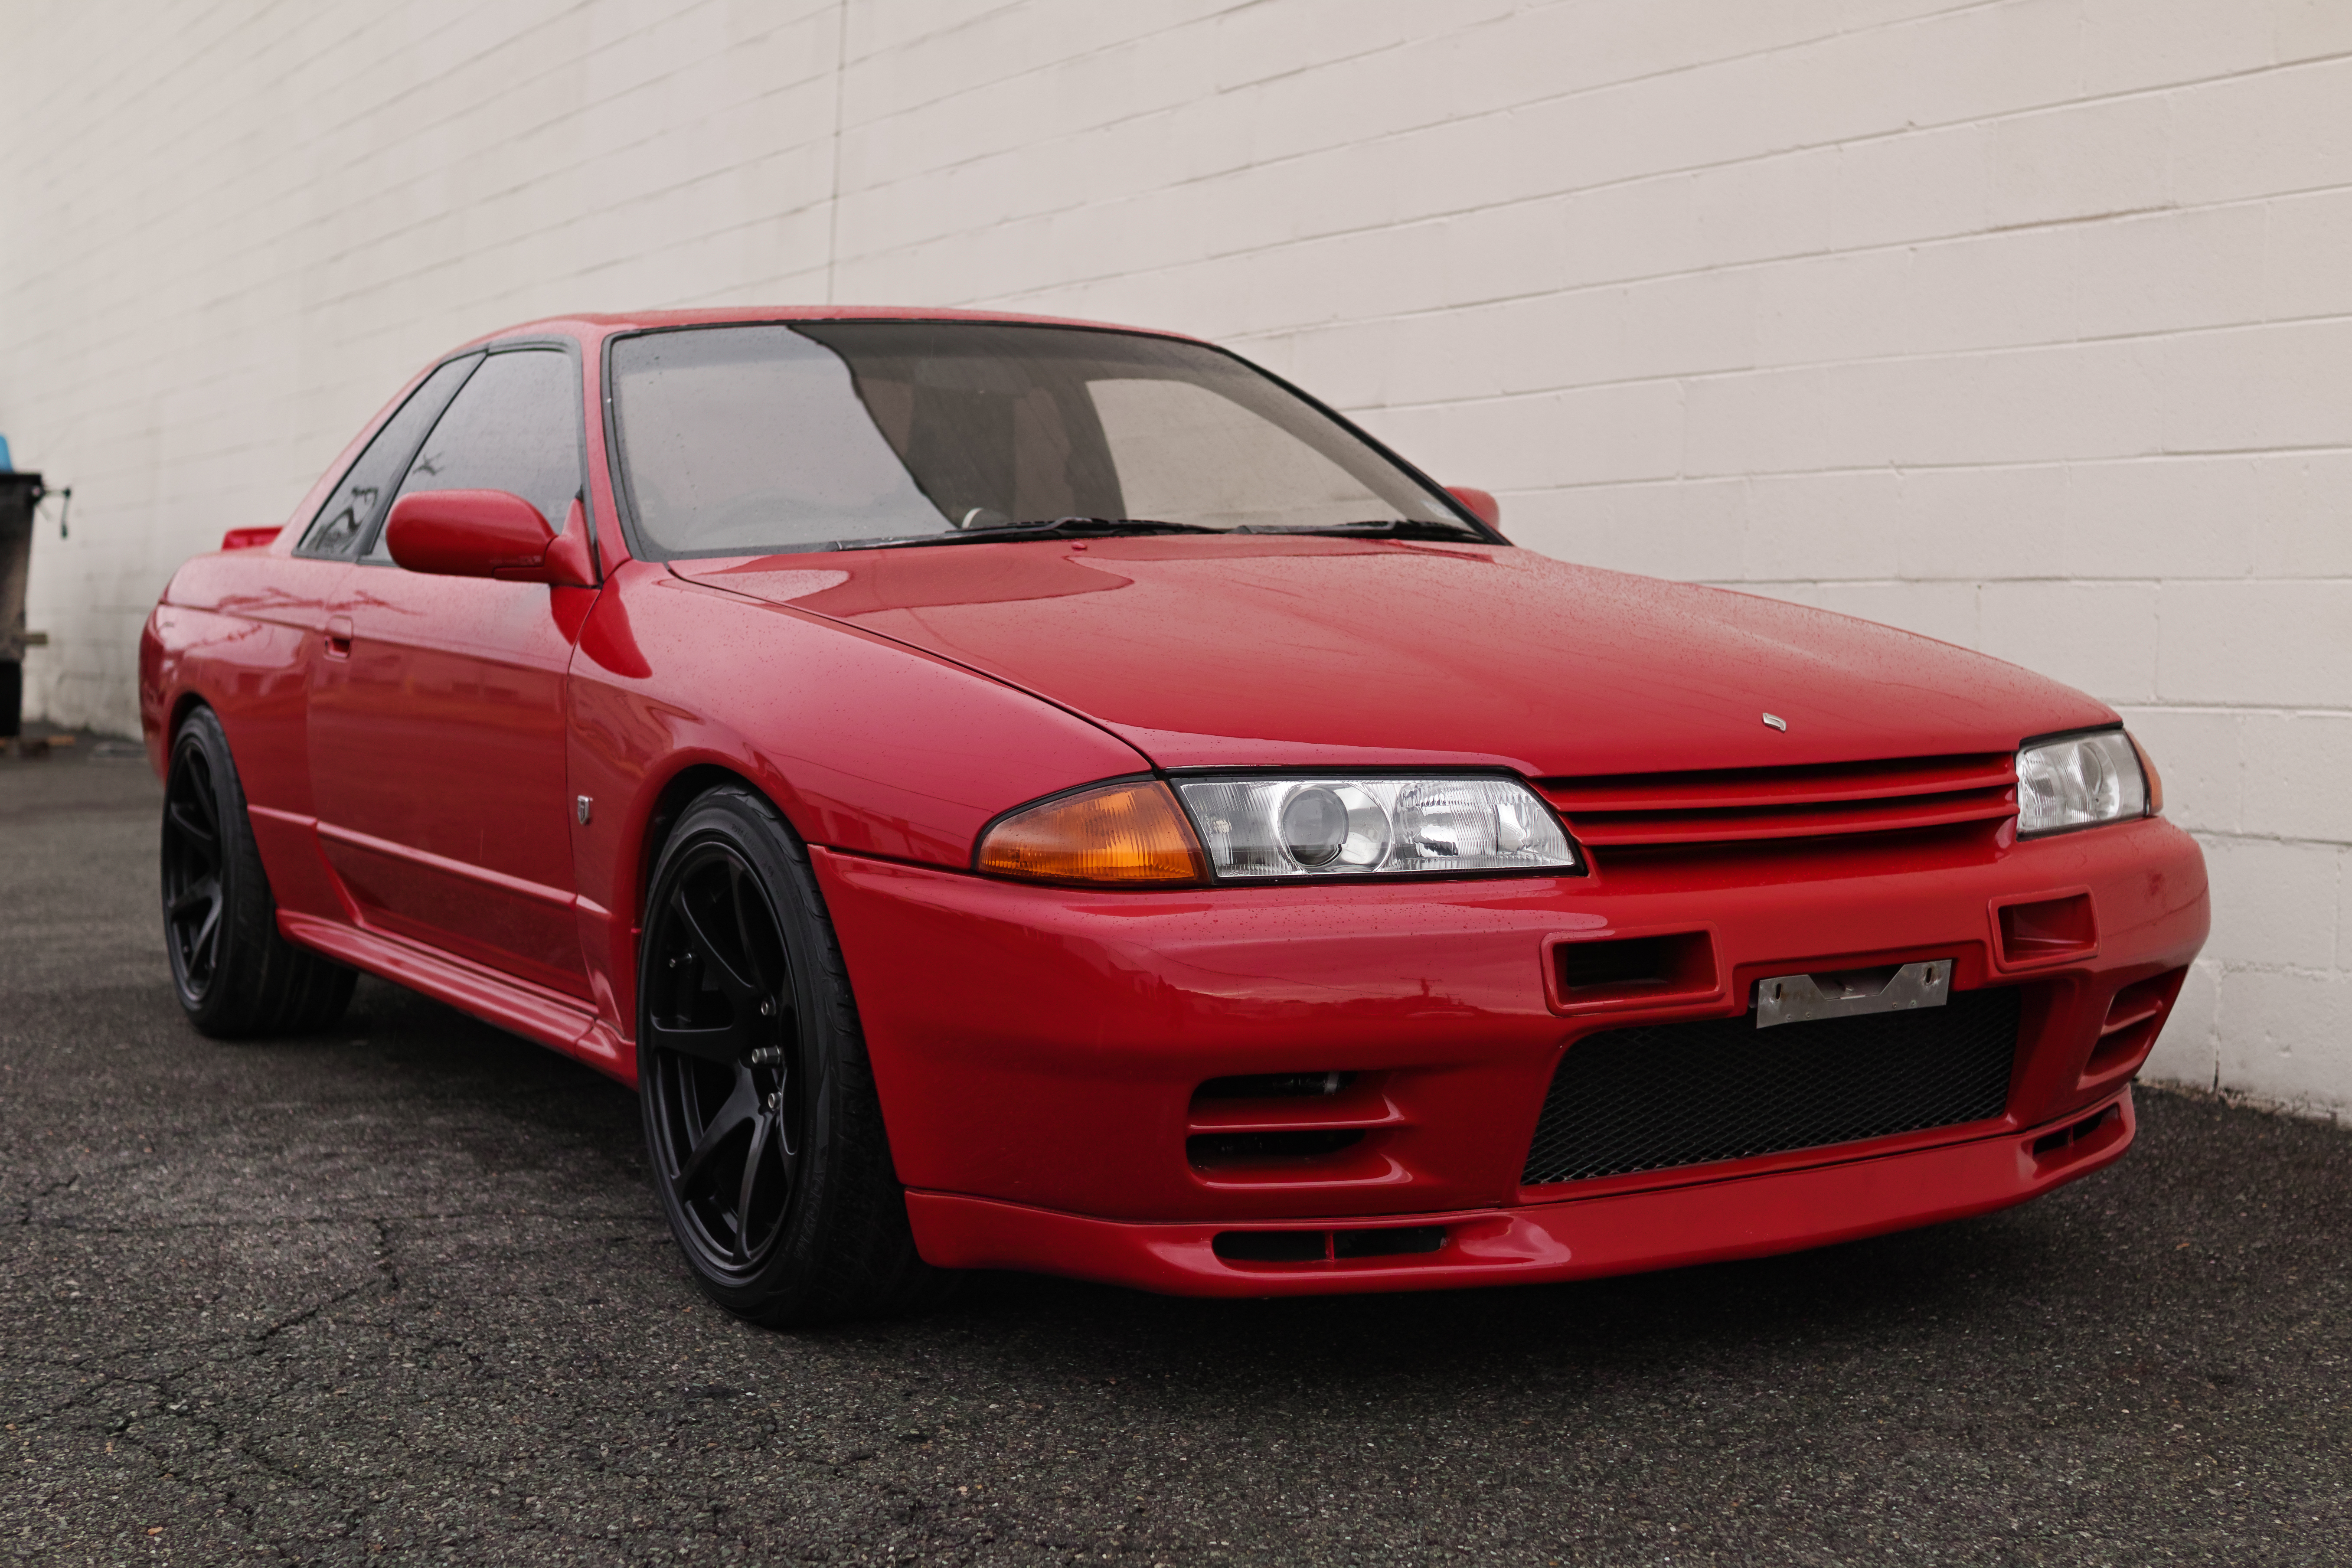 100 Legally Imported 1994 Nissan Skyline Gtr In Beautiful Red Color A Lightly Modified Godzilla For The Street Imported Rhd Cars J Spec Auto Sports